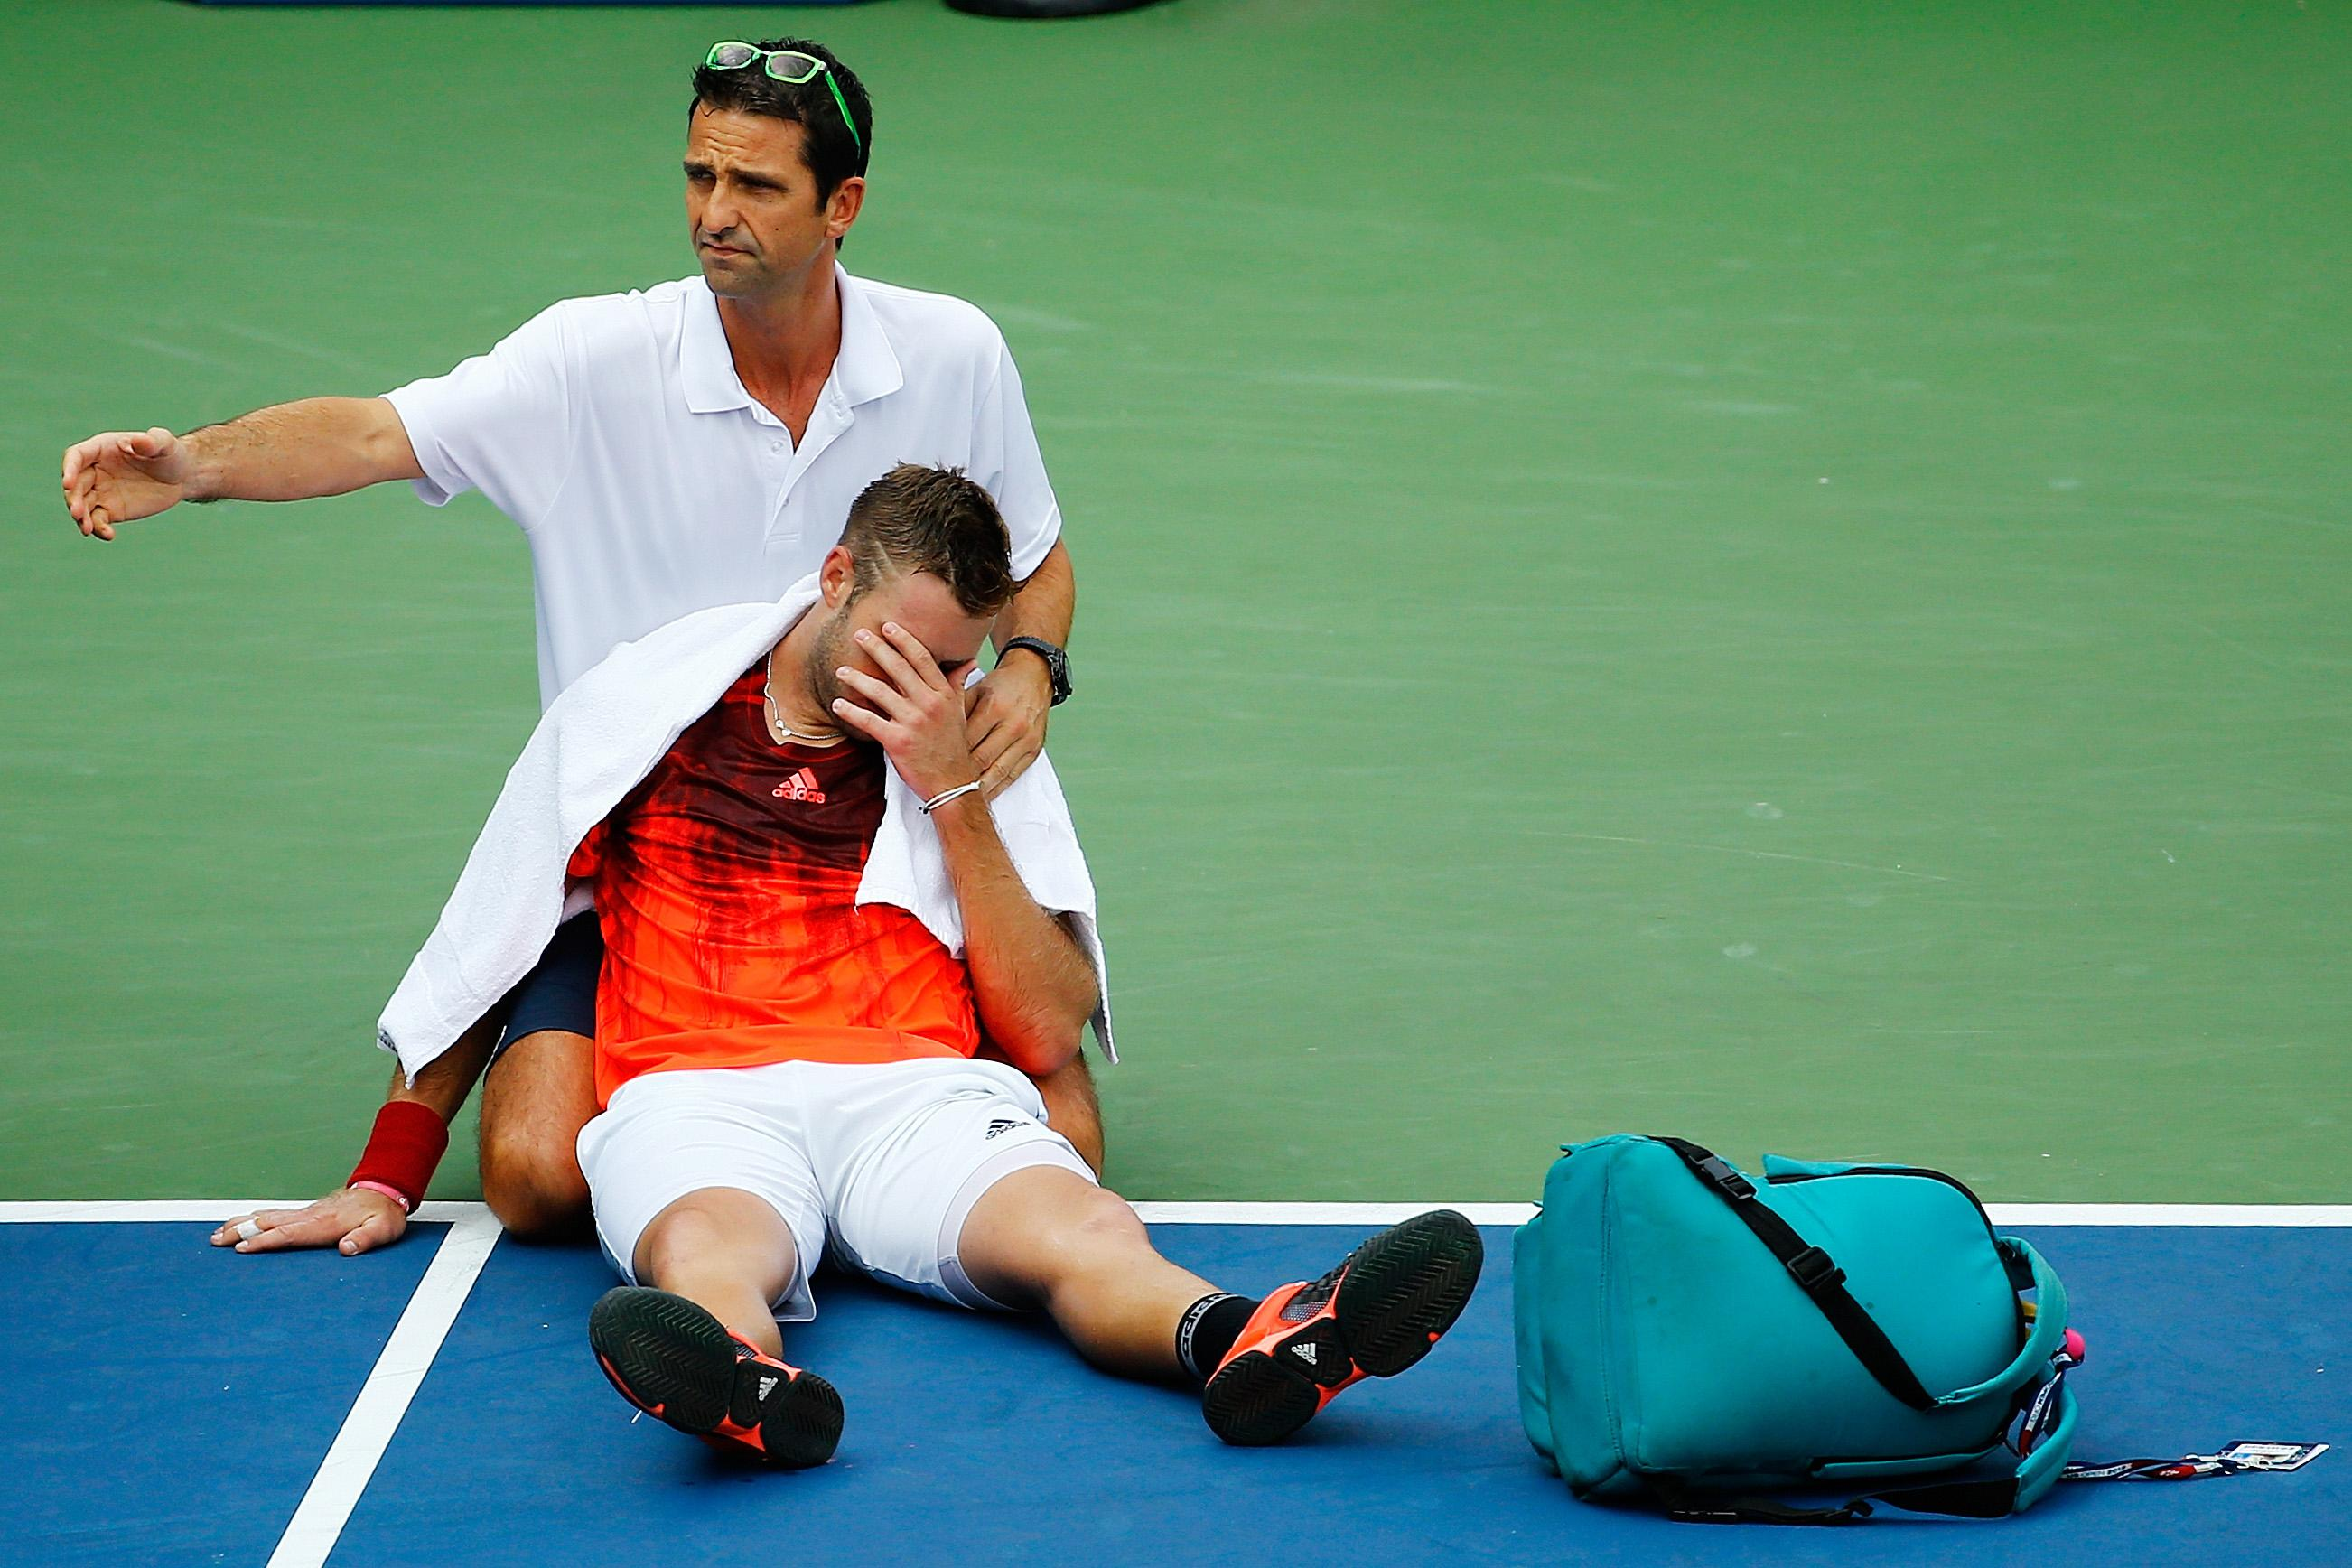 One of the best American tennis players collapsed on the court in the heat at the US Open